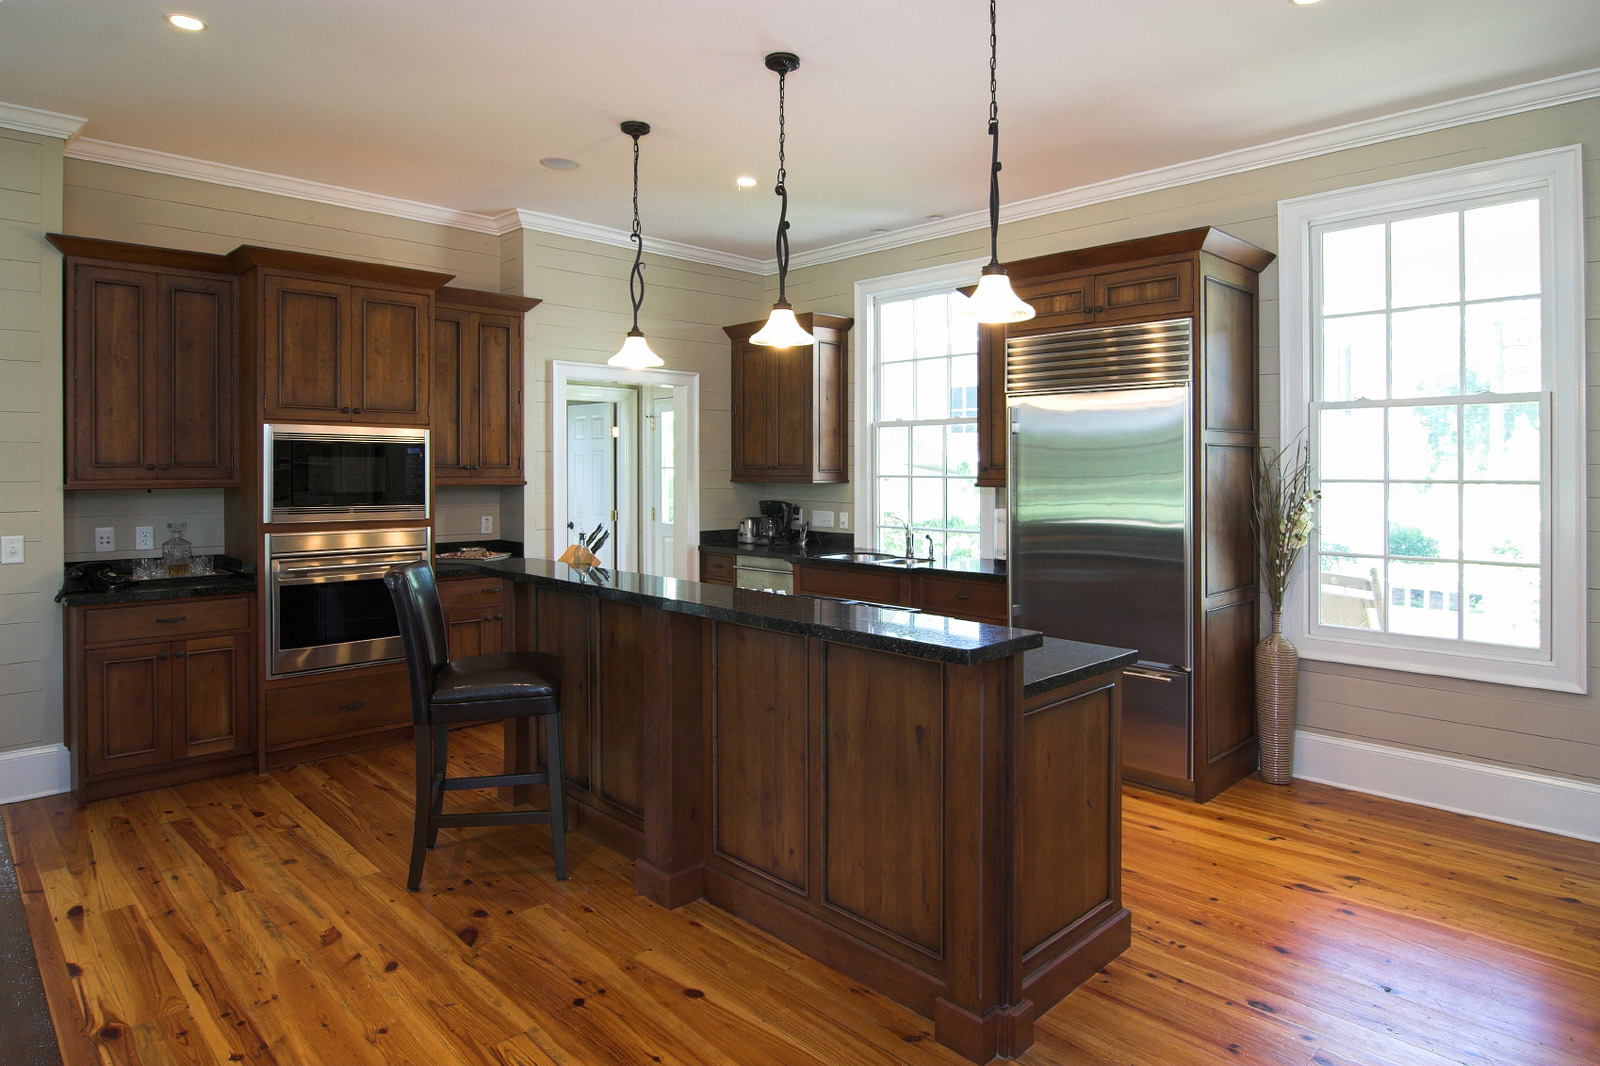 laminate flooring kitchen cabinets tips ideas laminate flooring mn menards hardwood flooring with sizing 1600  x HAWCCPB